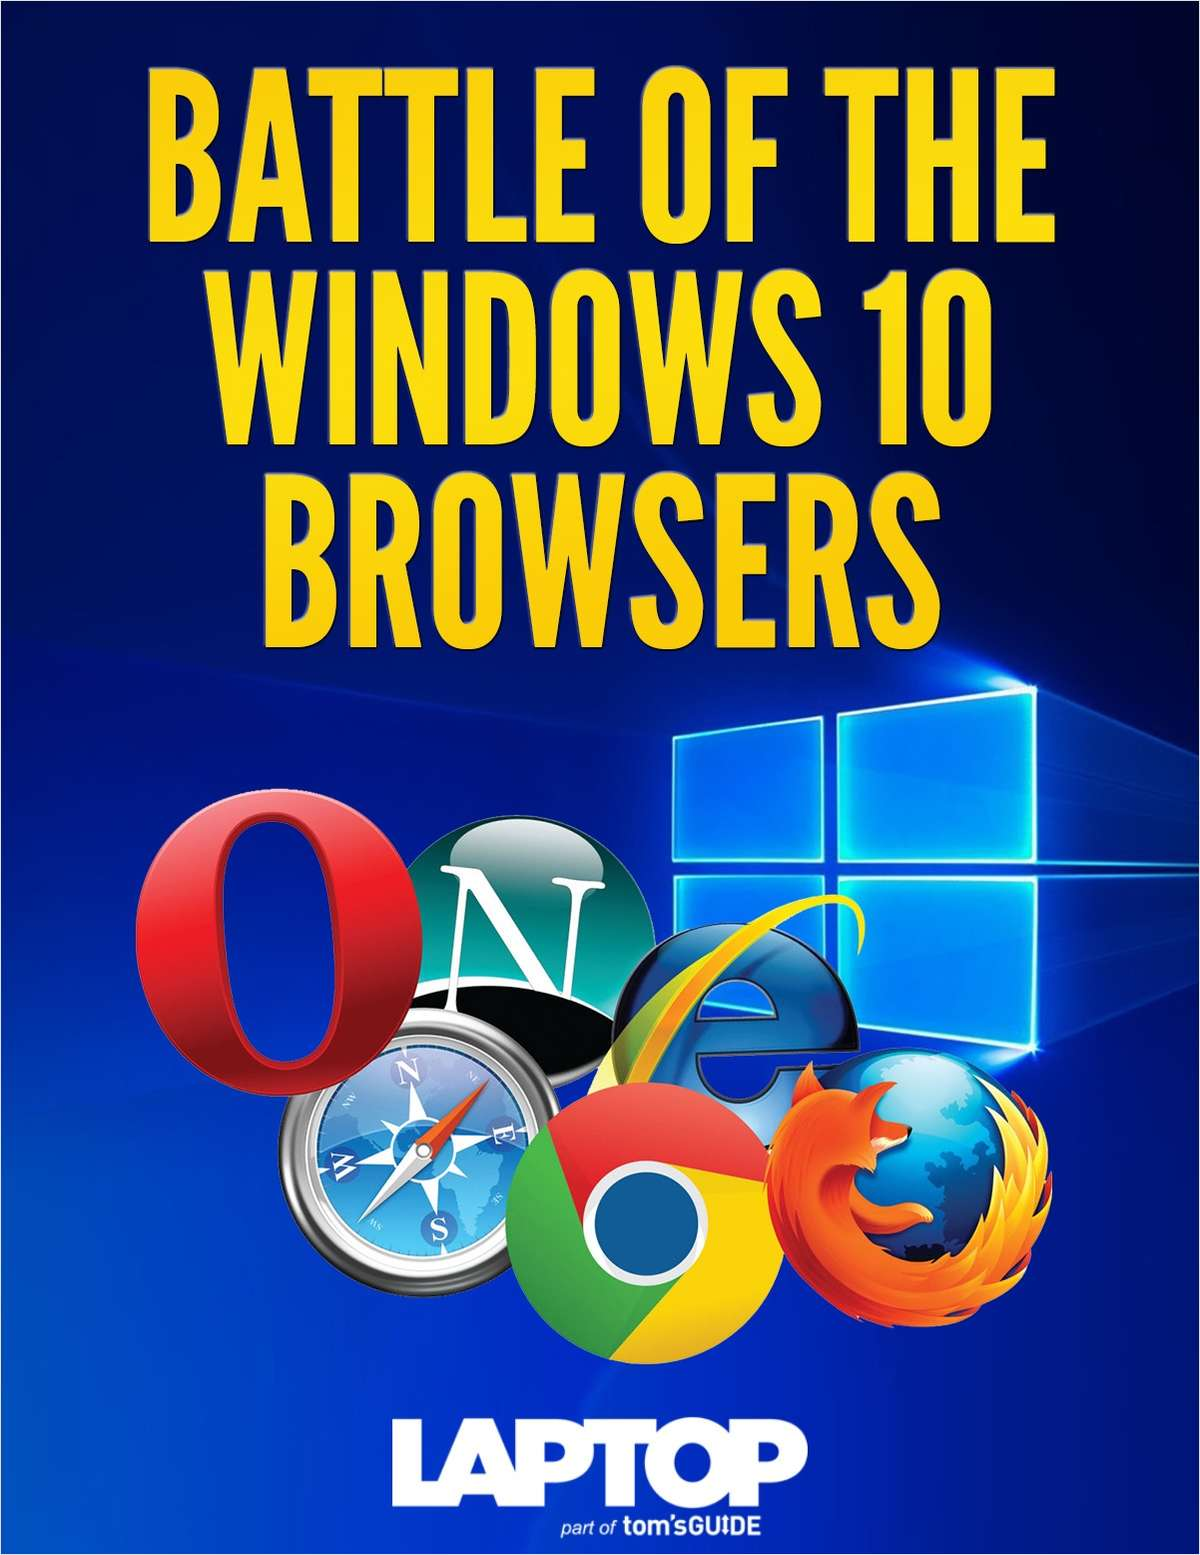 Battle of the Windows 10 Browsers